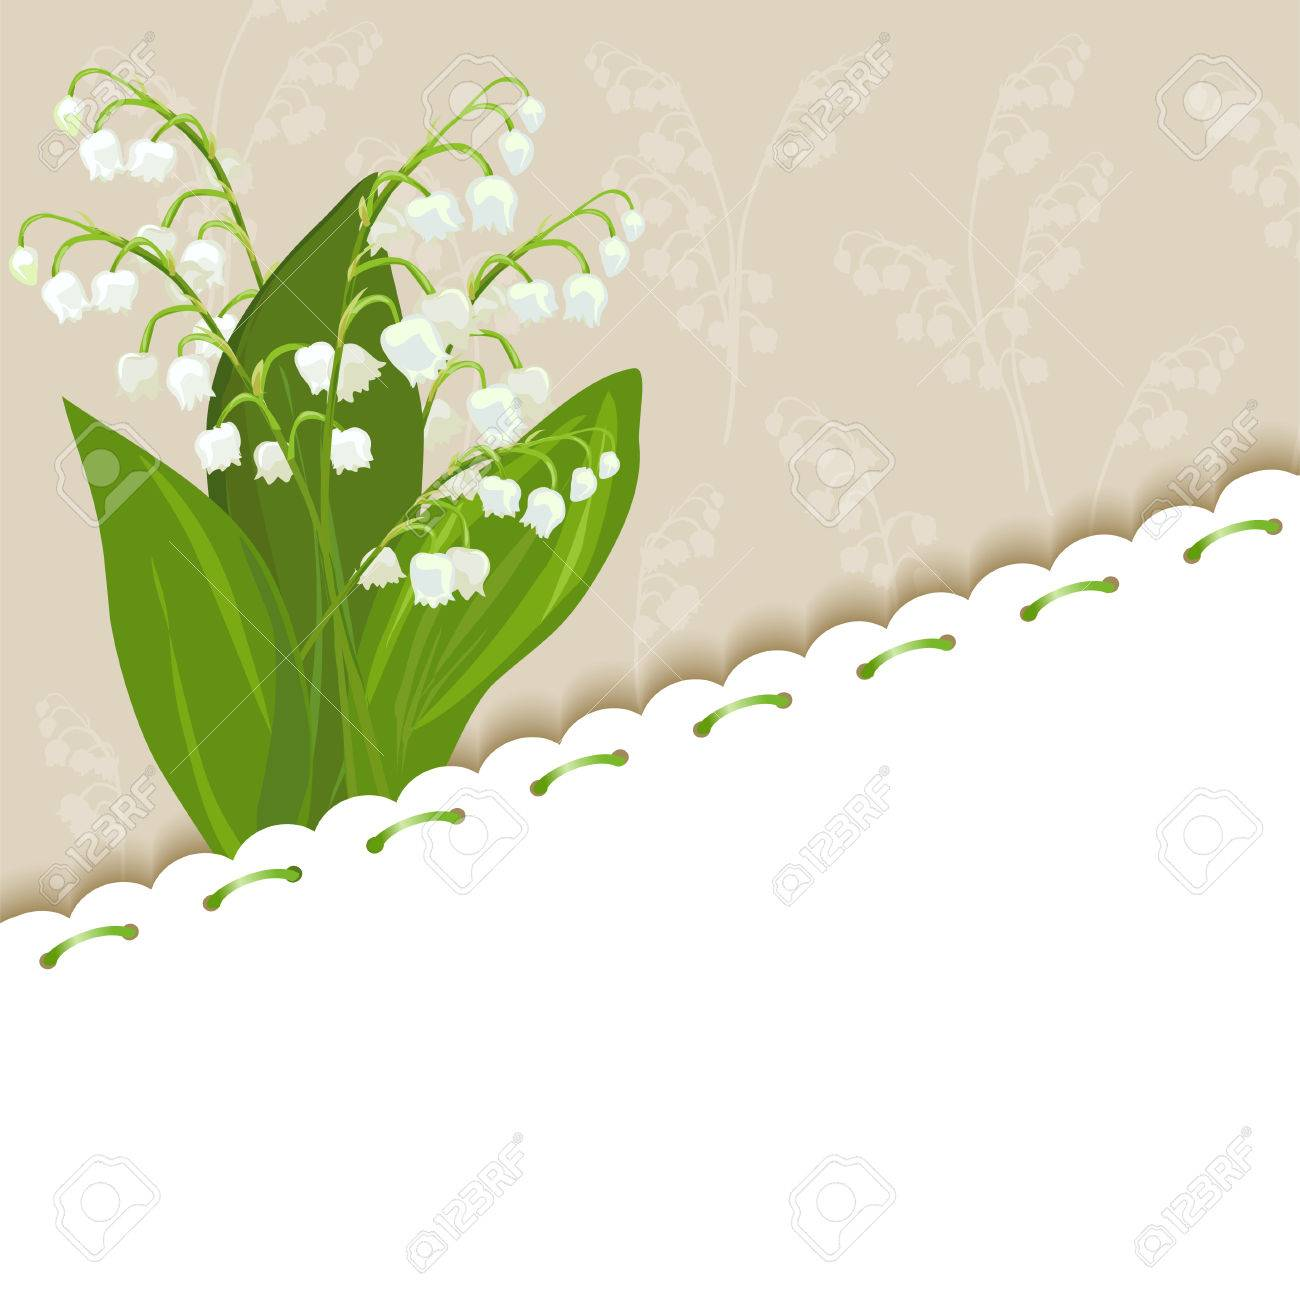 vintage background with lilies of the valley. vector illustration Standard-Bild - 27784390